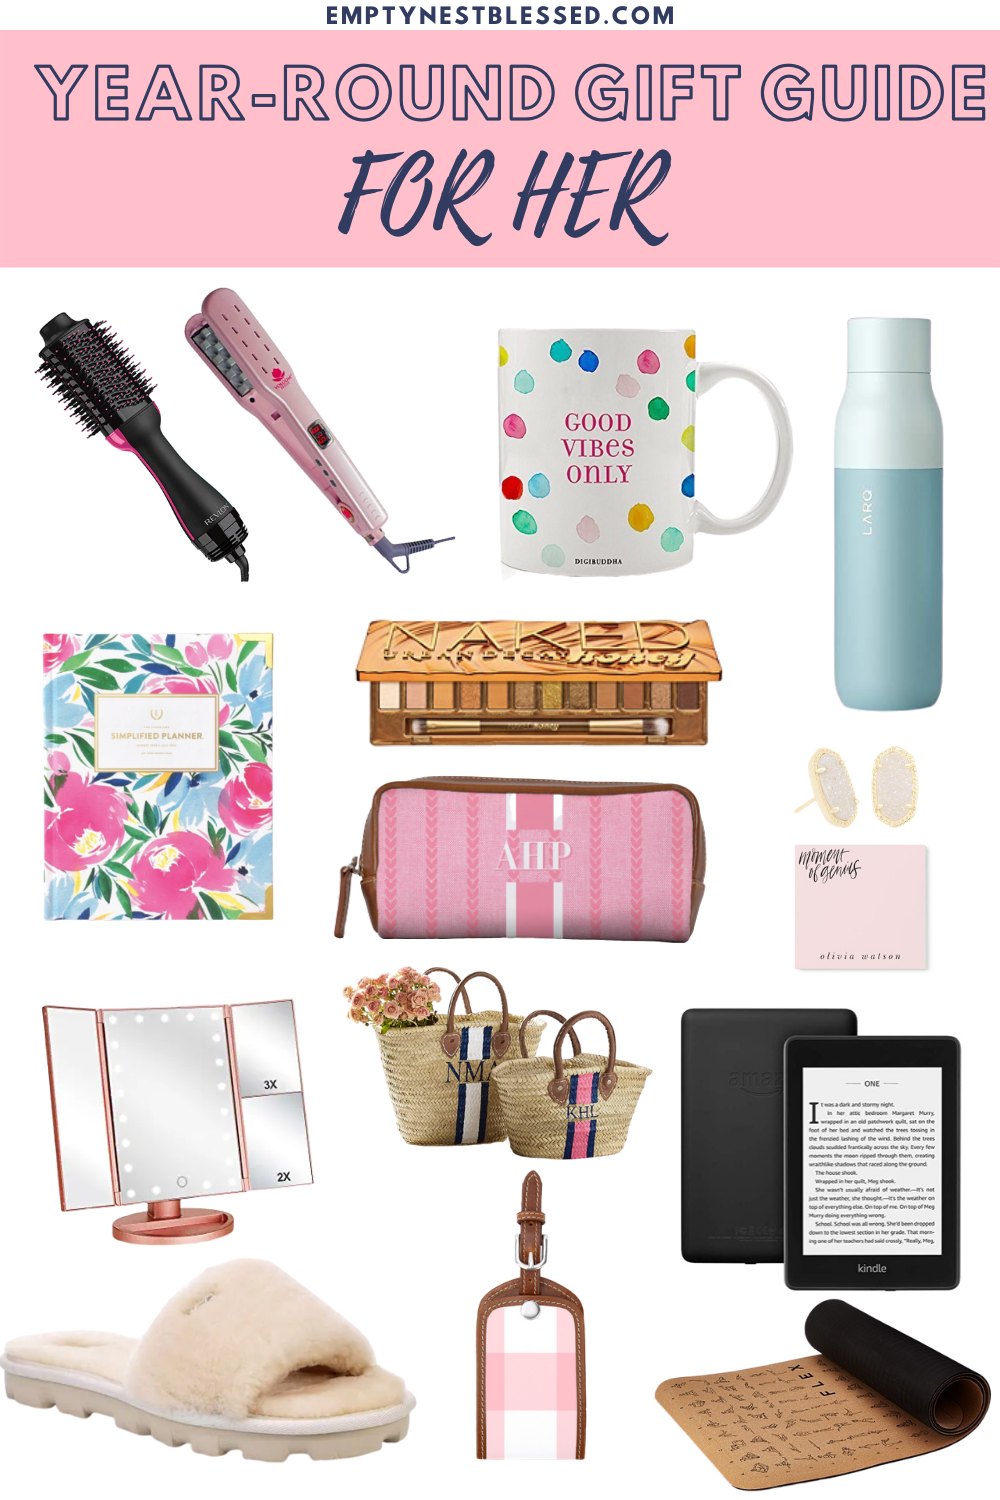 collage of products for gift ideas for her